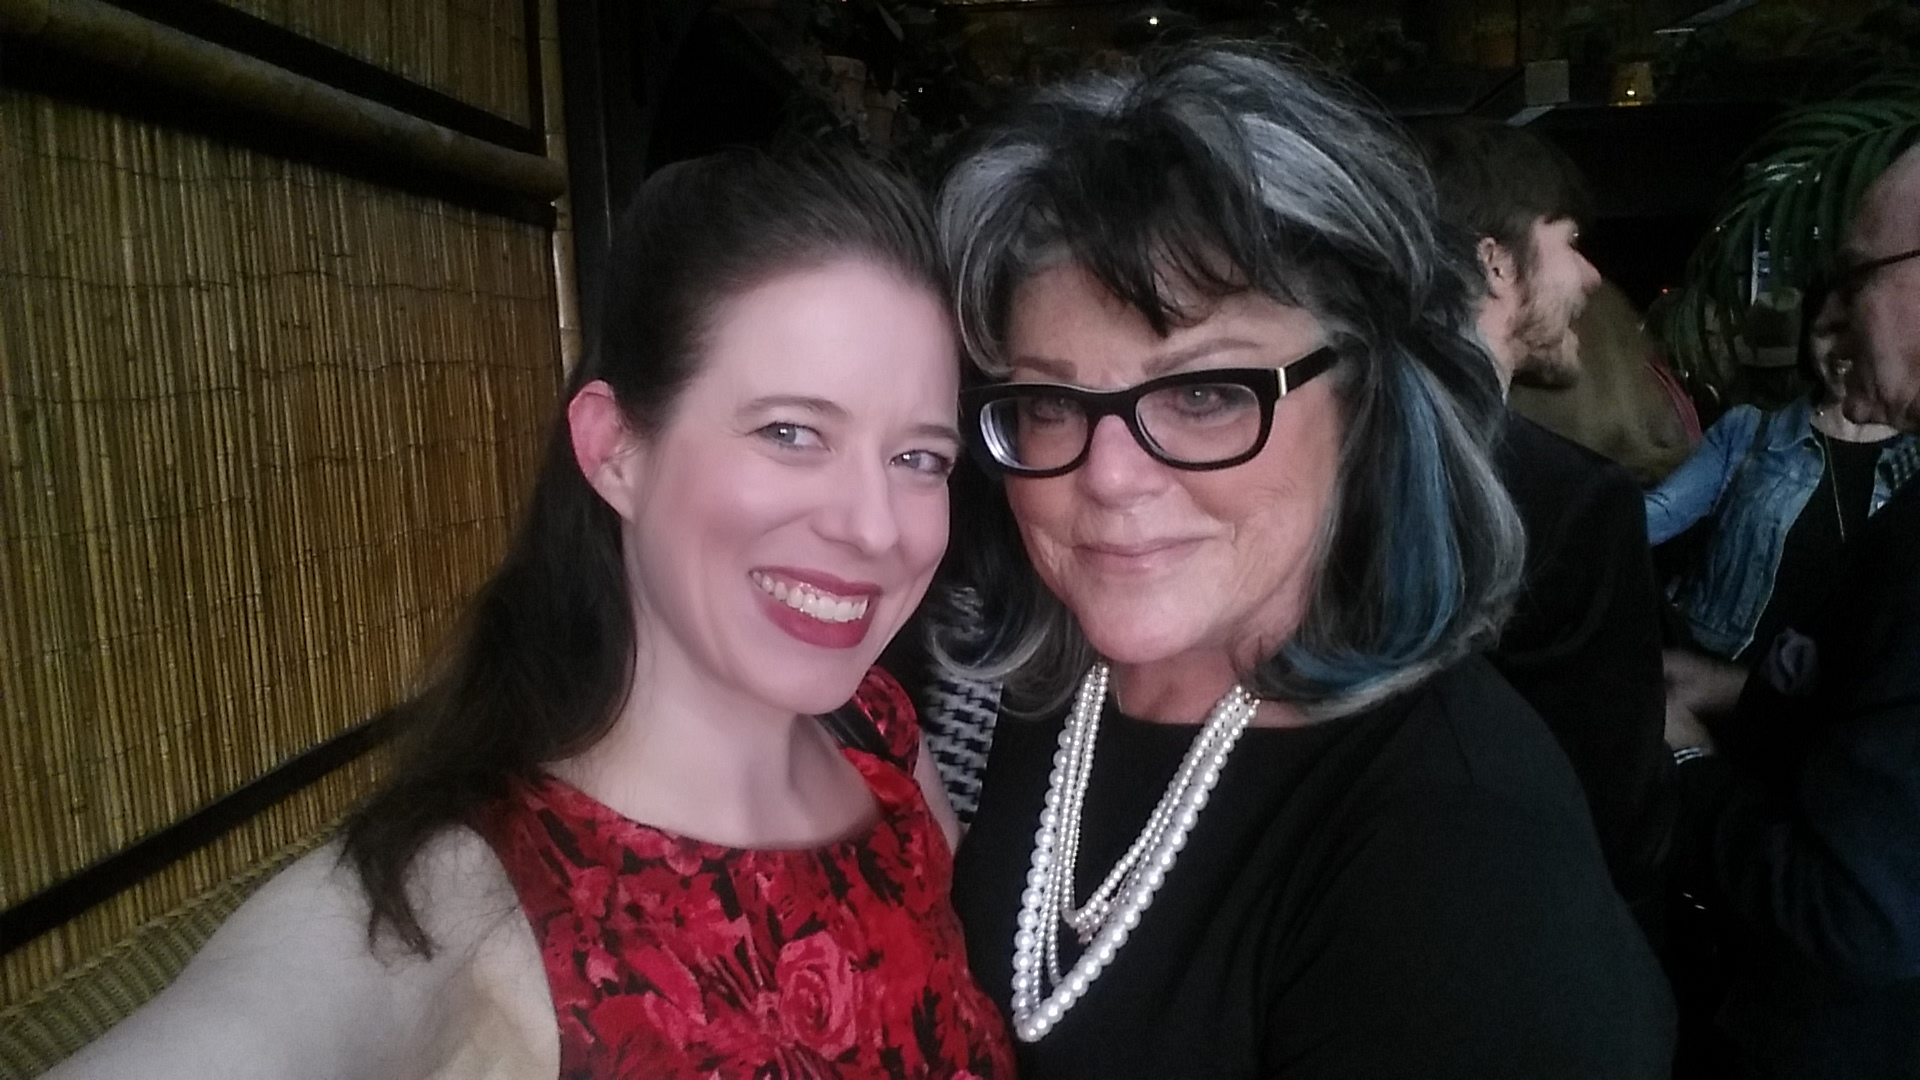 Heather Massie with Denise Loder DeLuca - daughter of Hedy Lamarr